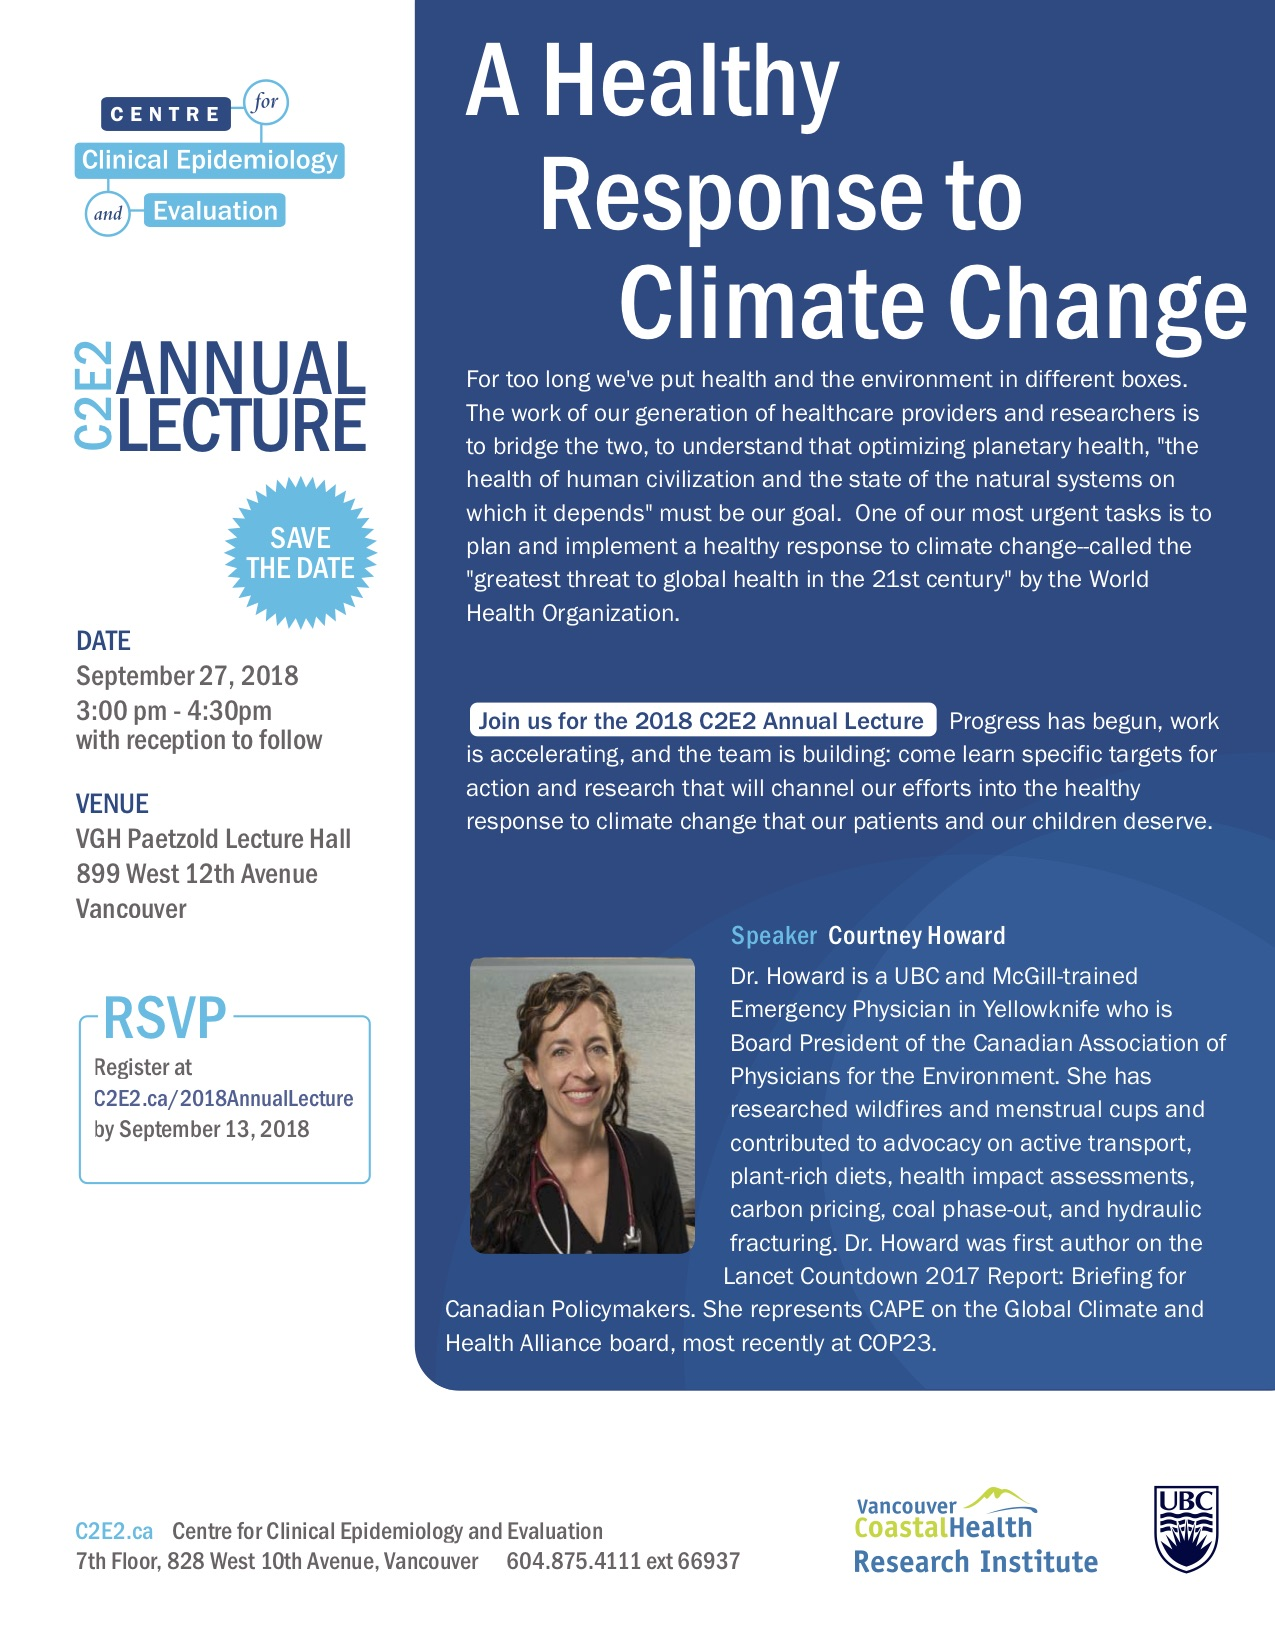 C2E2 Annual Lecture: A healthy response to climate change